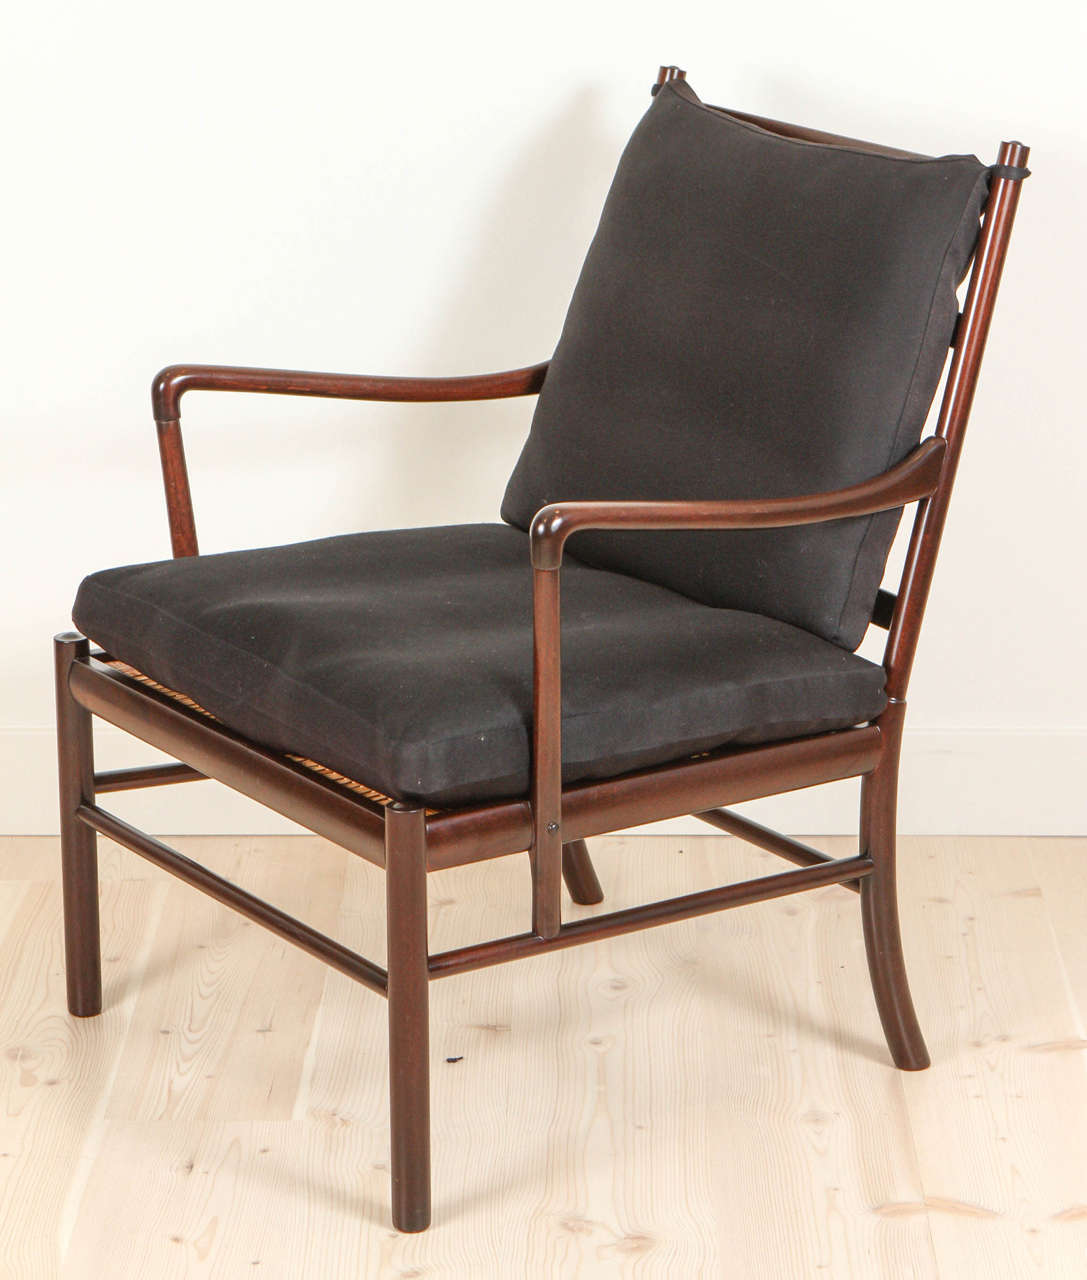 Rare pair of rosewood colonial chairs by ole wanscher for P jeppesen furniture